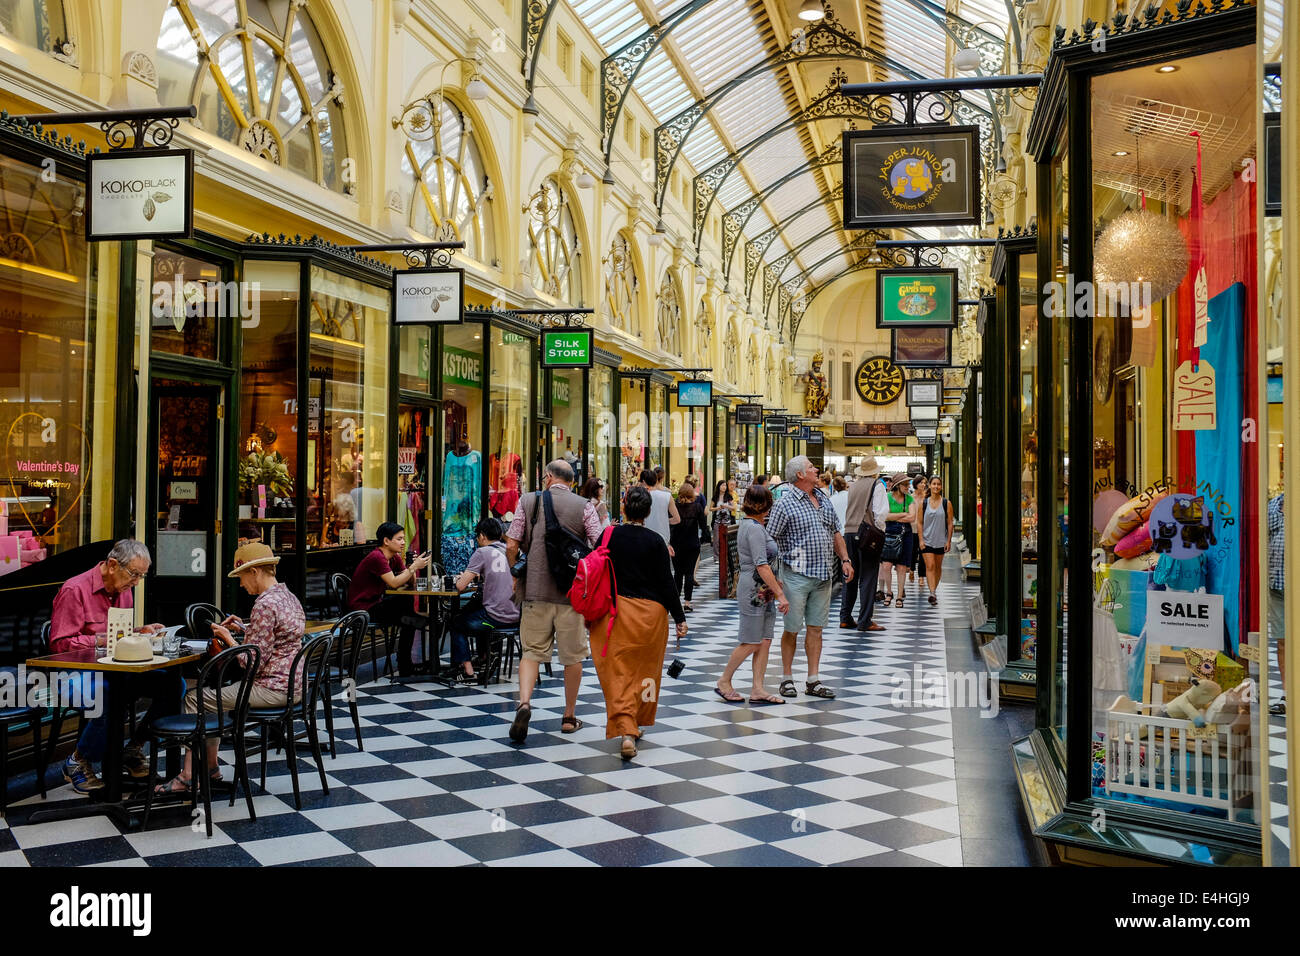 The Royal Arcade Melbourne CBD Australia - Stock Image